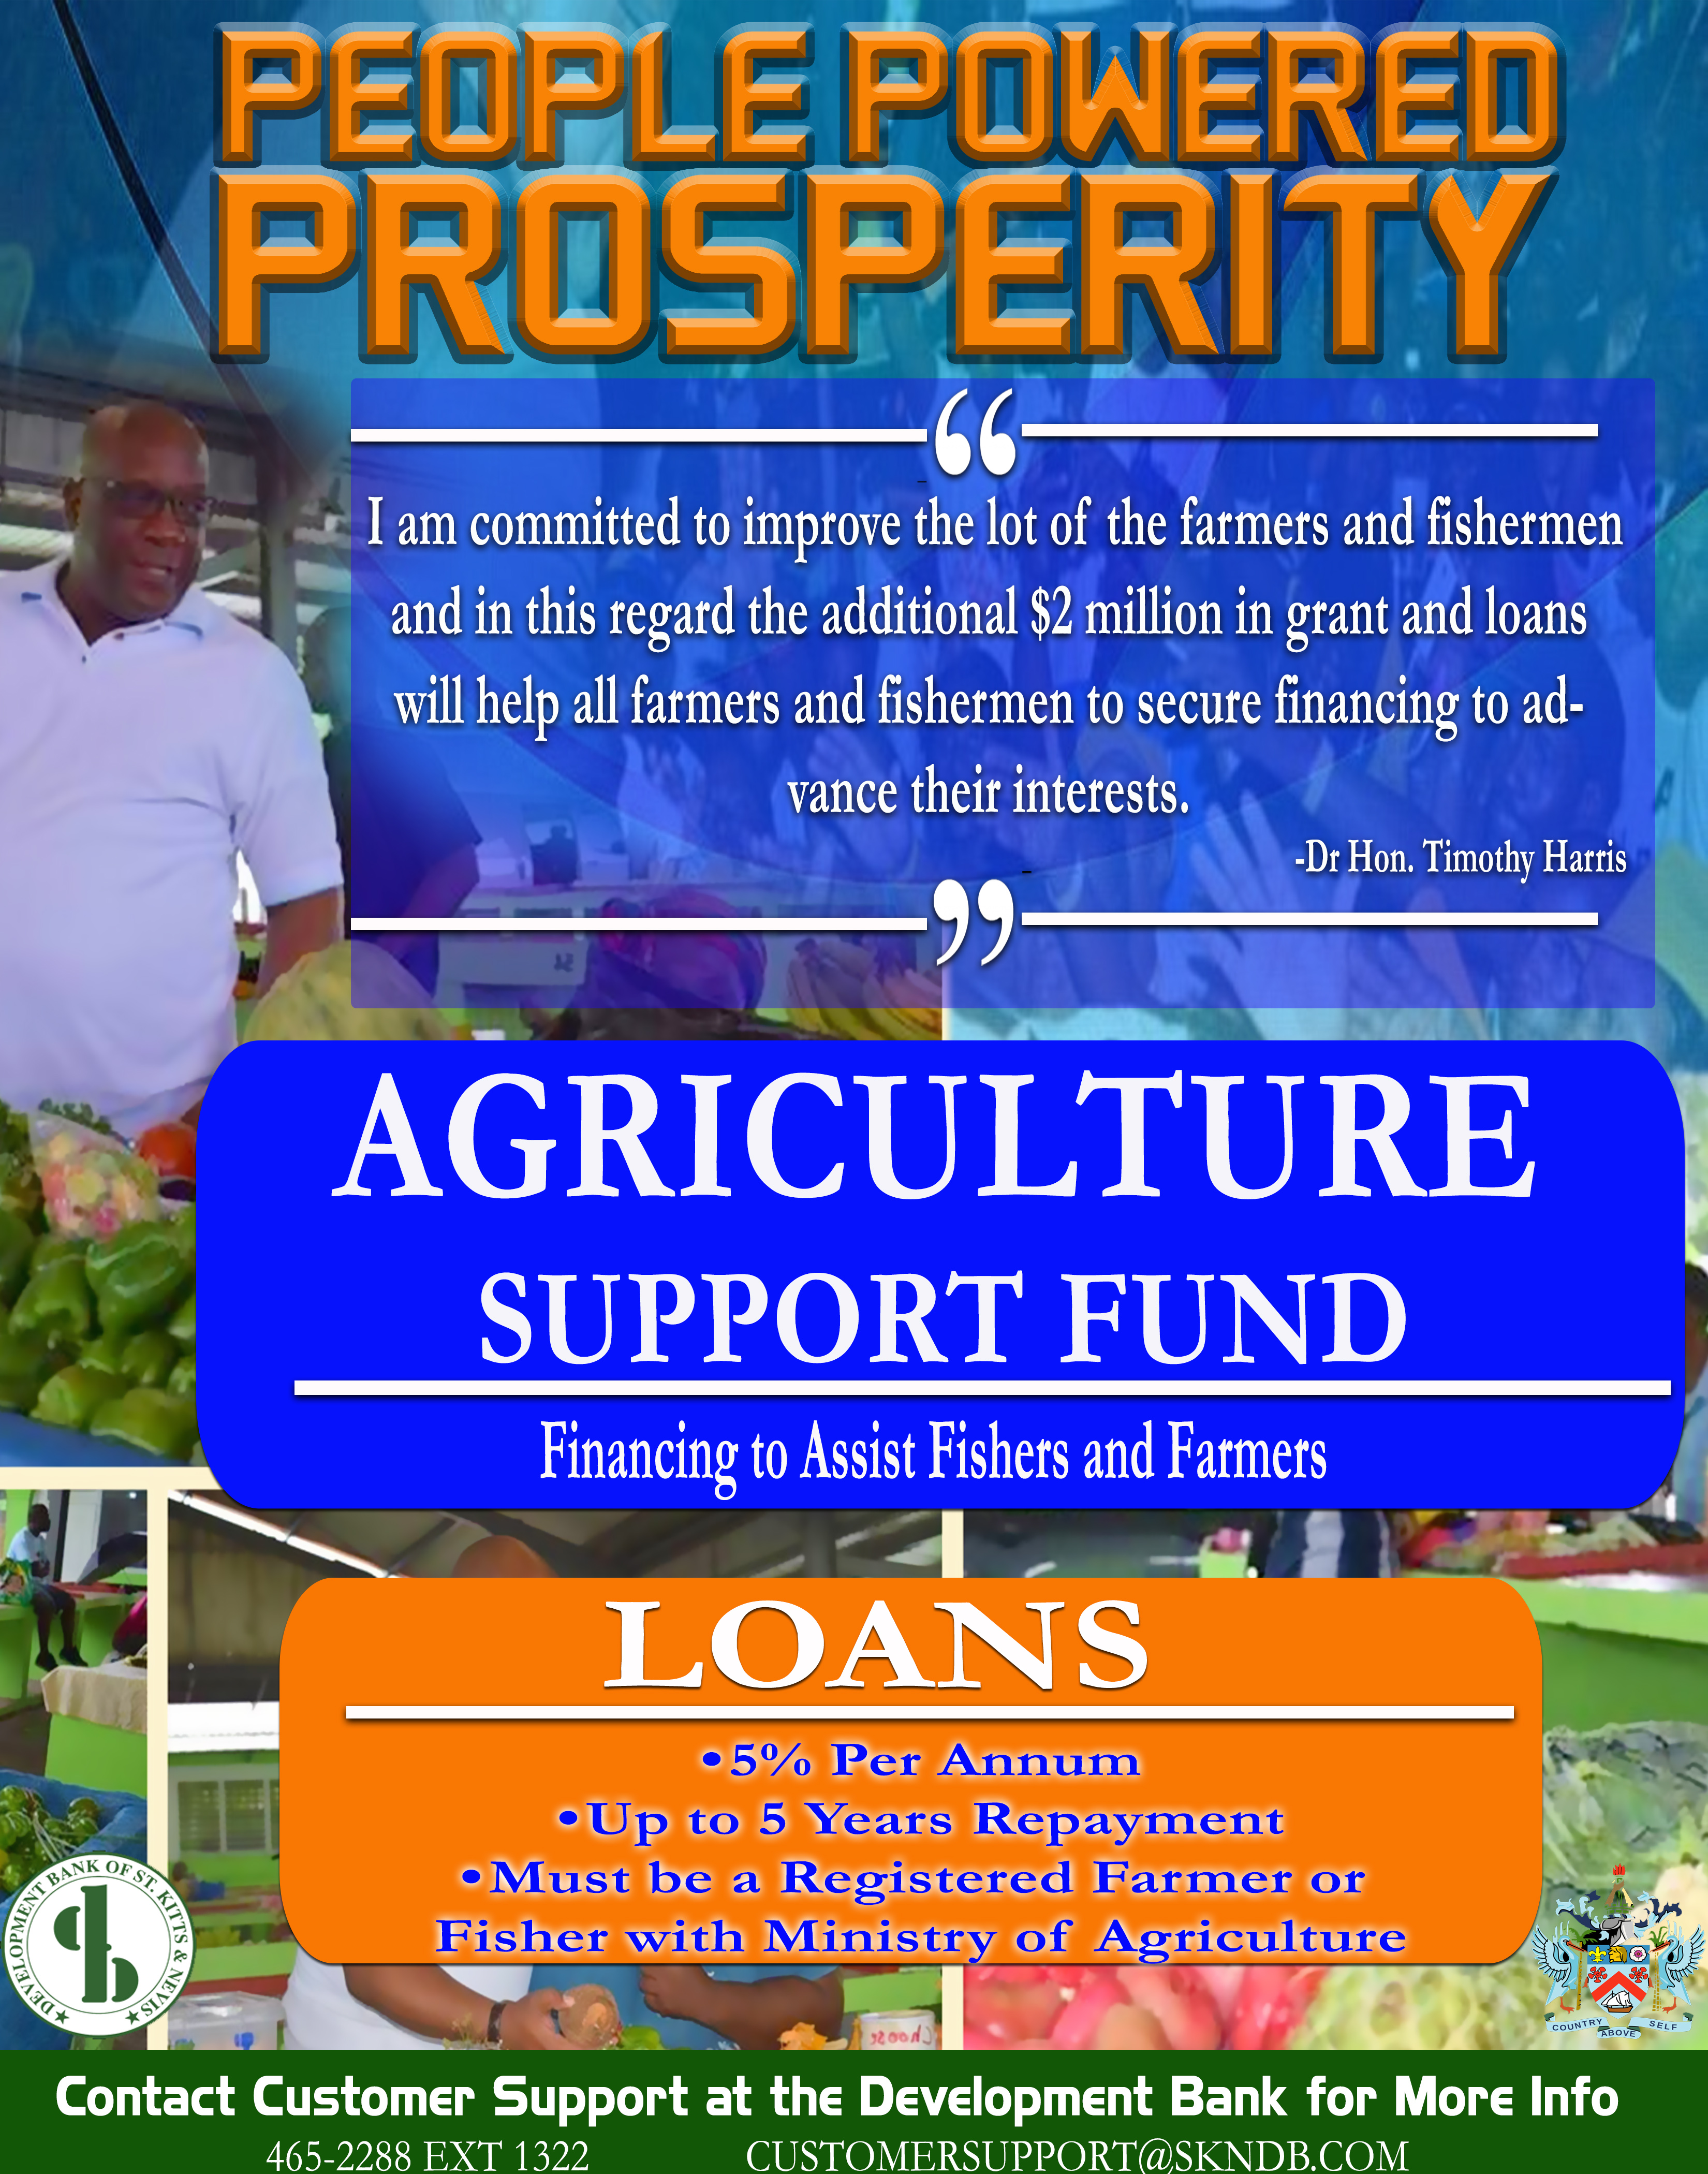 People-Powered Prosperity-Fishers and Farmers